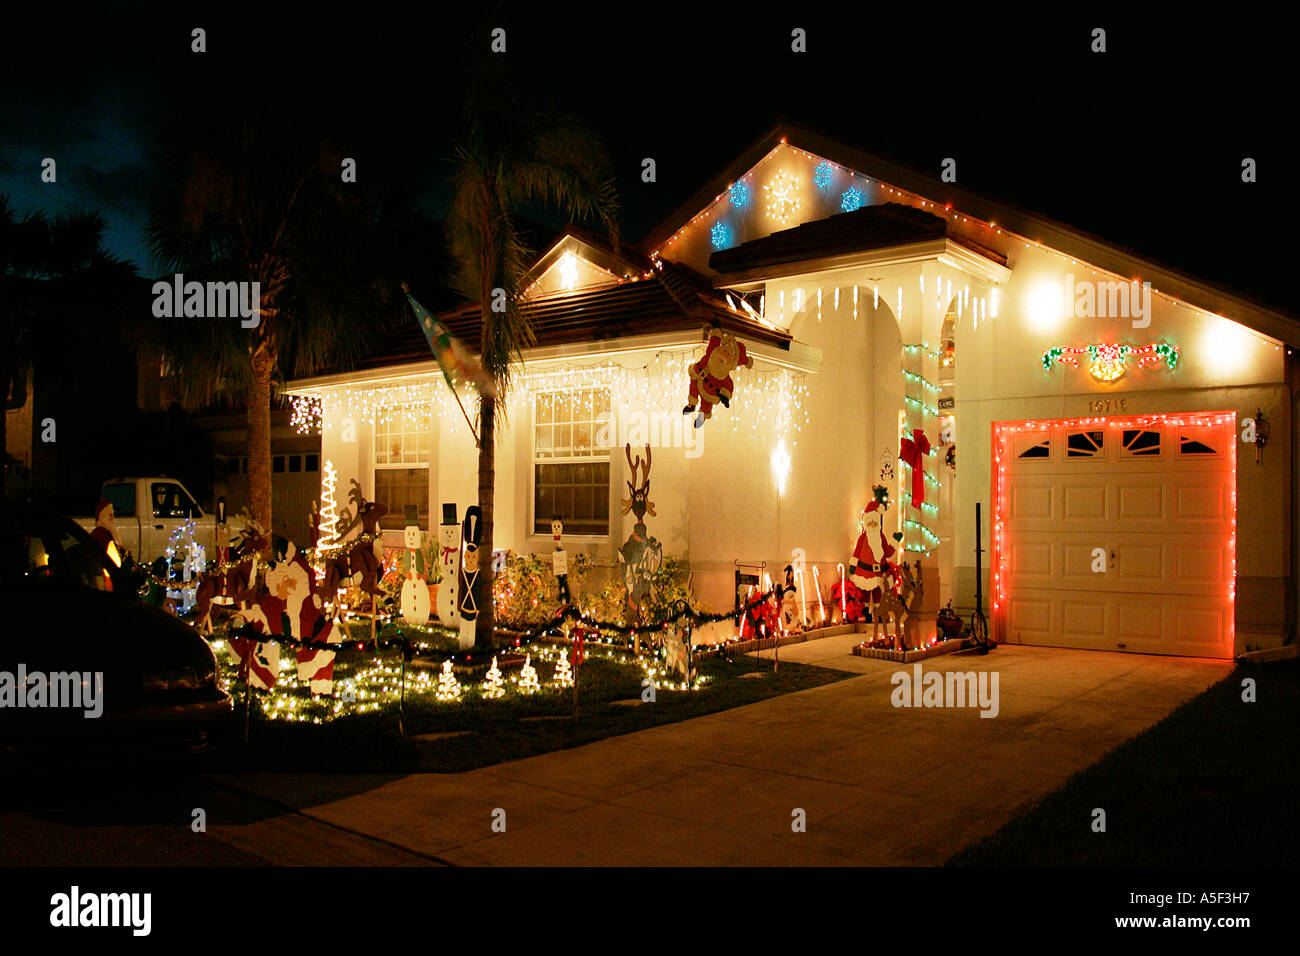 Christmas decorations front garden night time twinkling lights palm ...